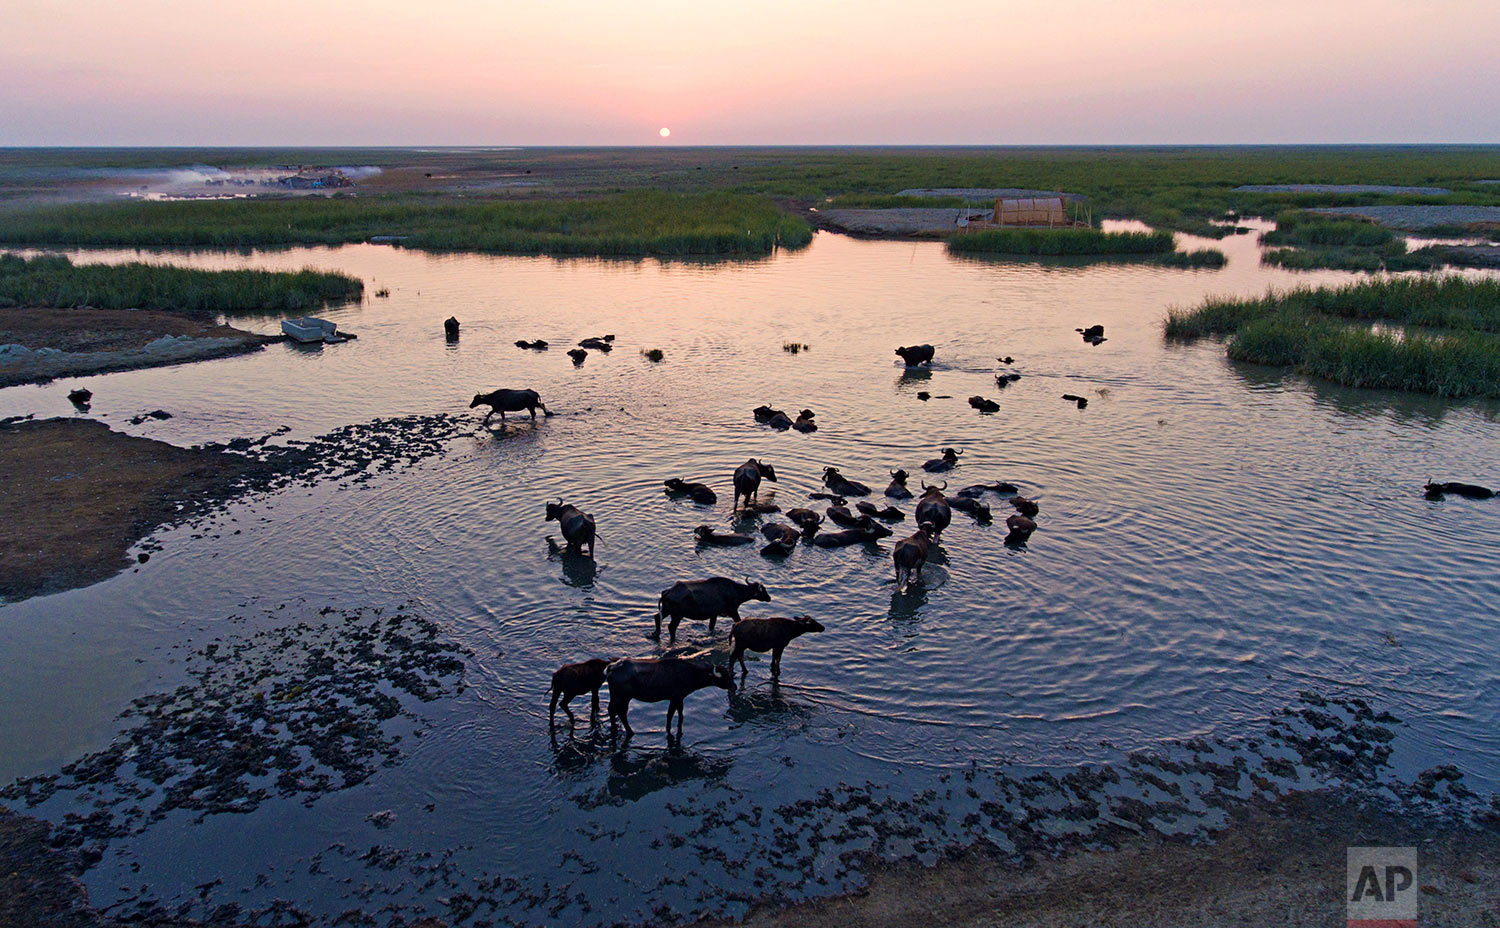 In this Monday, Sept. 11, 2017 photo, water buffalo wade in the Chabaish marsh in Nasiriyah, about 200 miles (320 kilometers) southeast of Baghdad, Iraq. Iraq's southern marshes, a lush remnant of the cradle of civilization, were reborn after the 2003 fall of Saddam Hussein when residents dismantled dams he had built a decade earlier to drain the area in order to root out Shiite rebels. (AP Photo/Nabil al-Jurani)